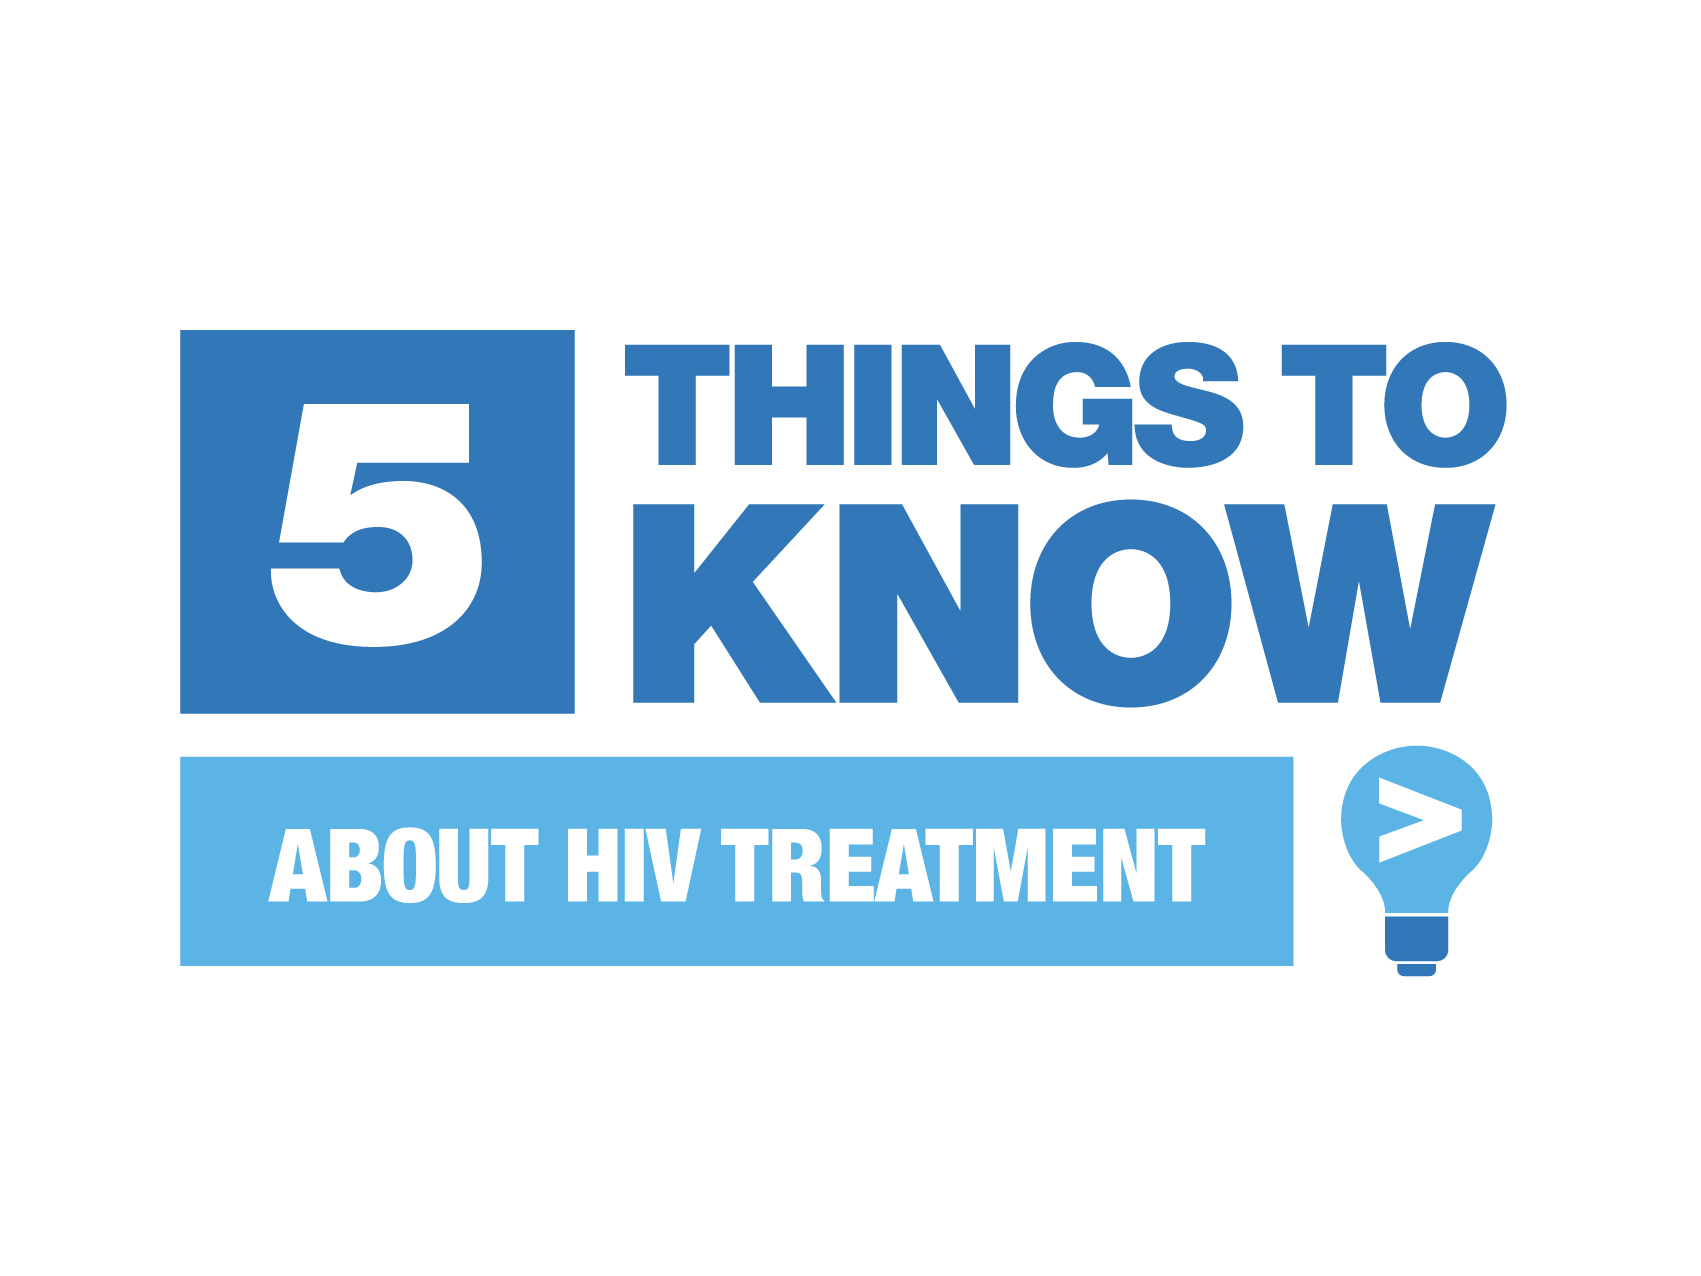 Blue and white Five Things To Know About HIV Treatment graphic on white background